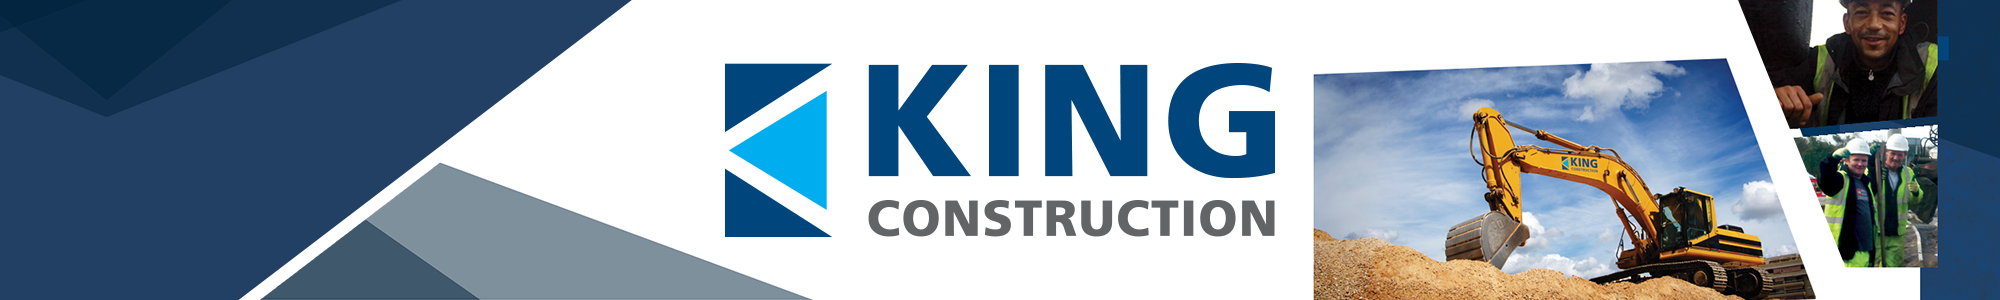 King Construction*